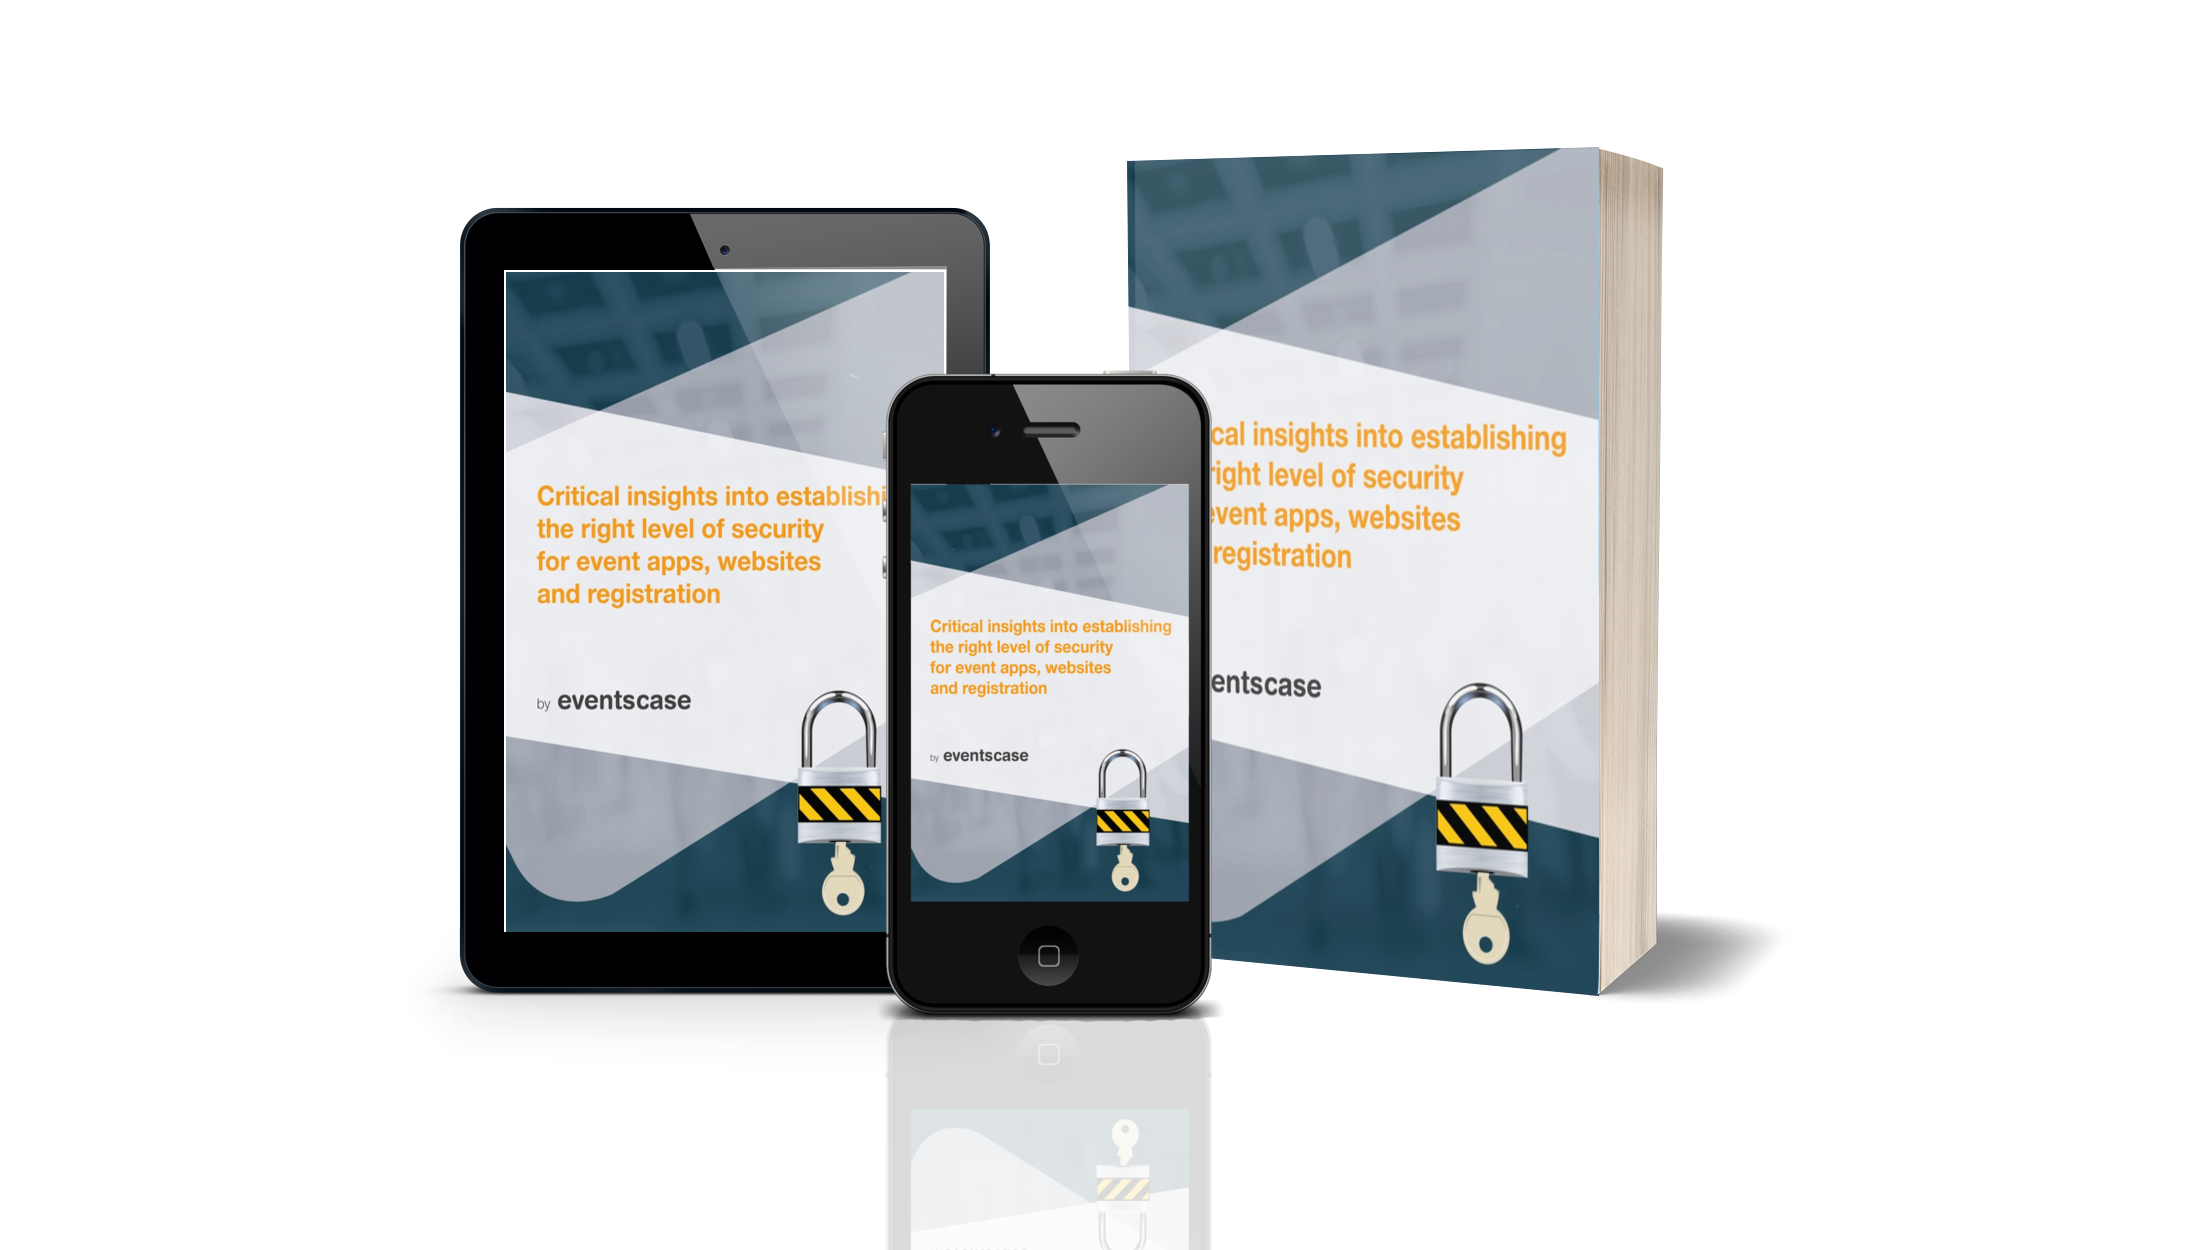 eventscase security whitepaper ebook - Critical insights into establishing the right level of security for event apps, websites and registration - Whitepaper